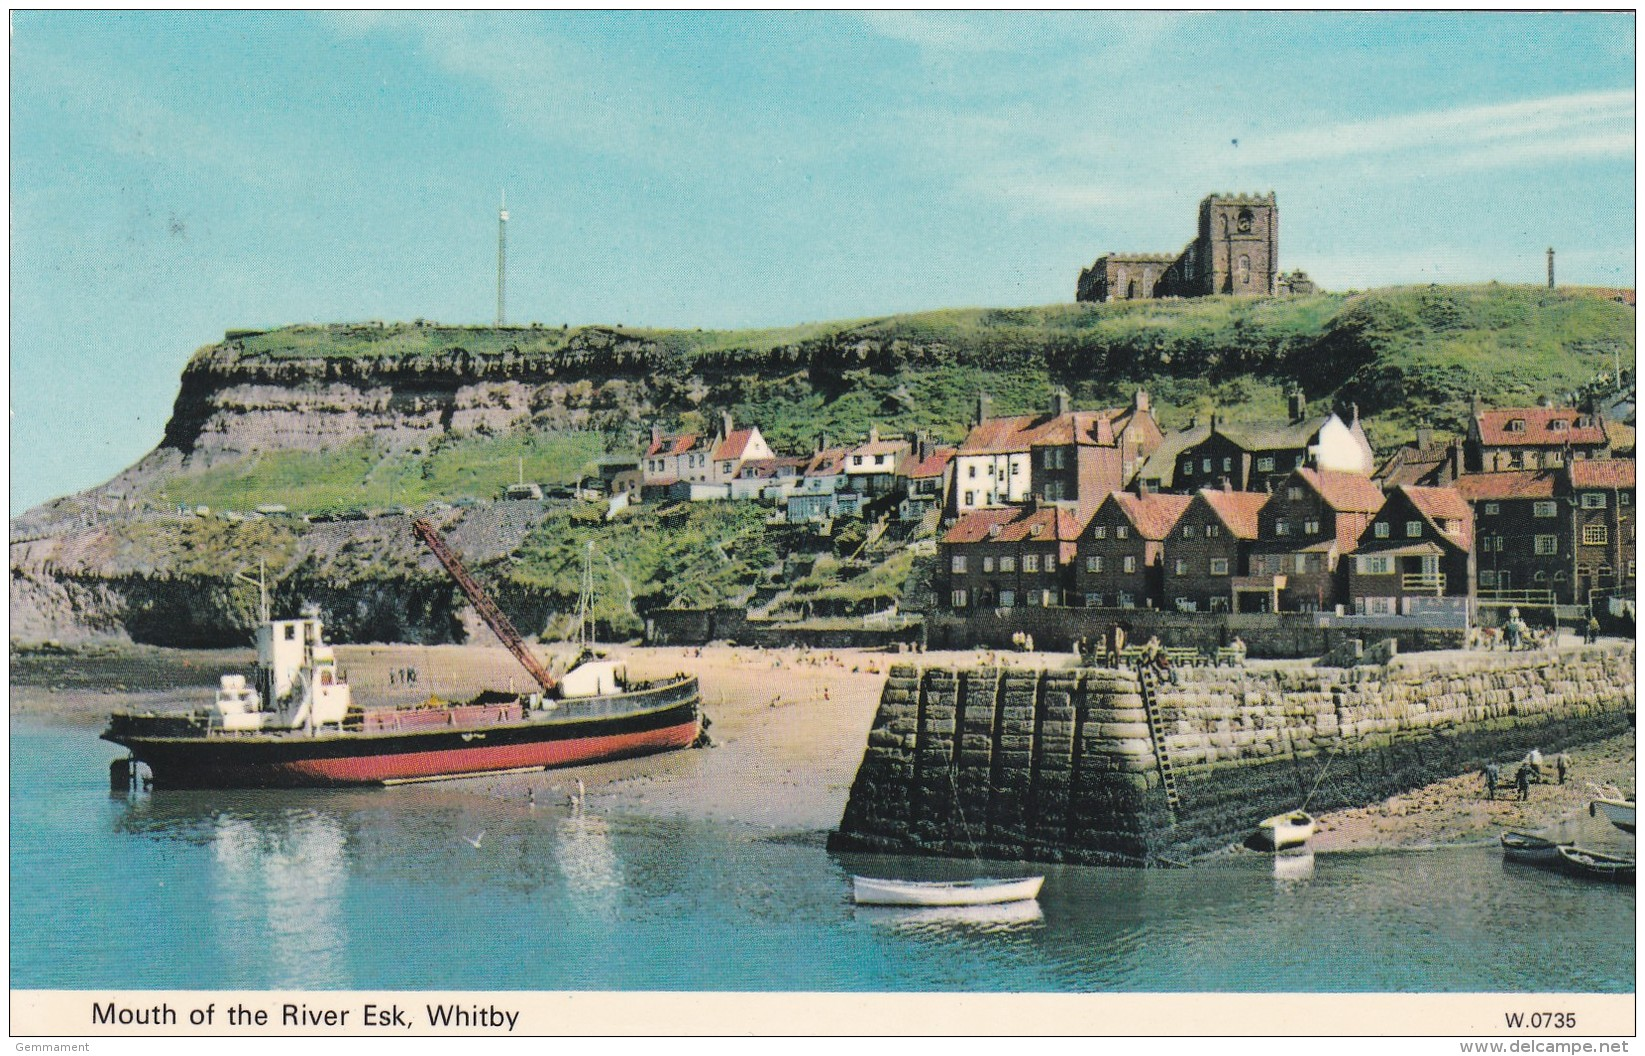 WHITBY - MOUTH OF THE RIVER ESK - Whitby